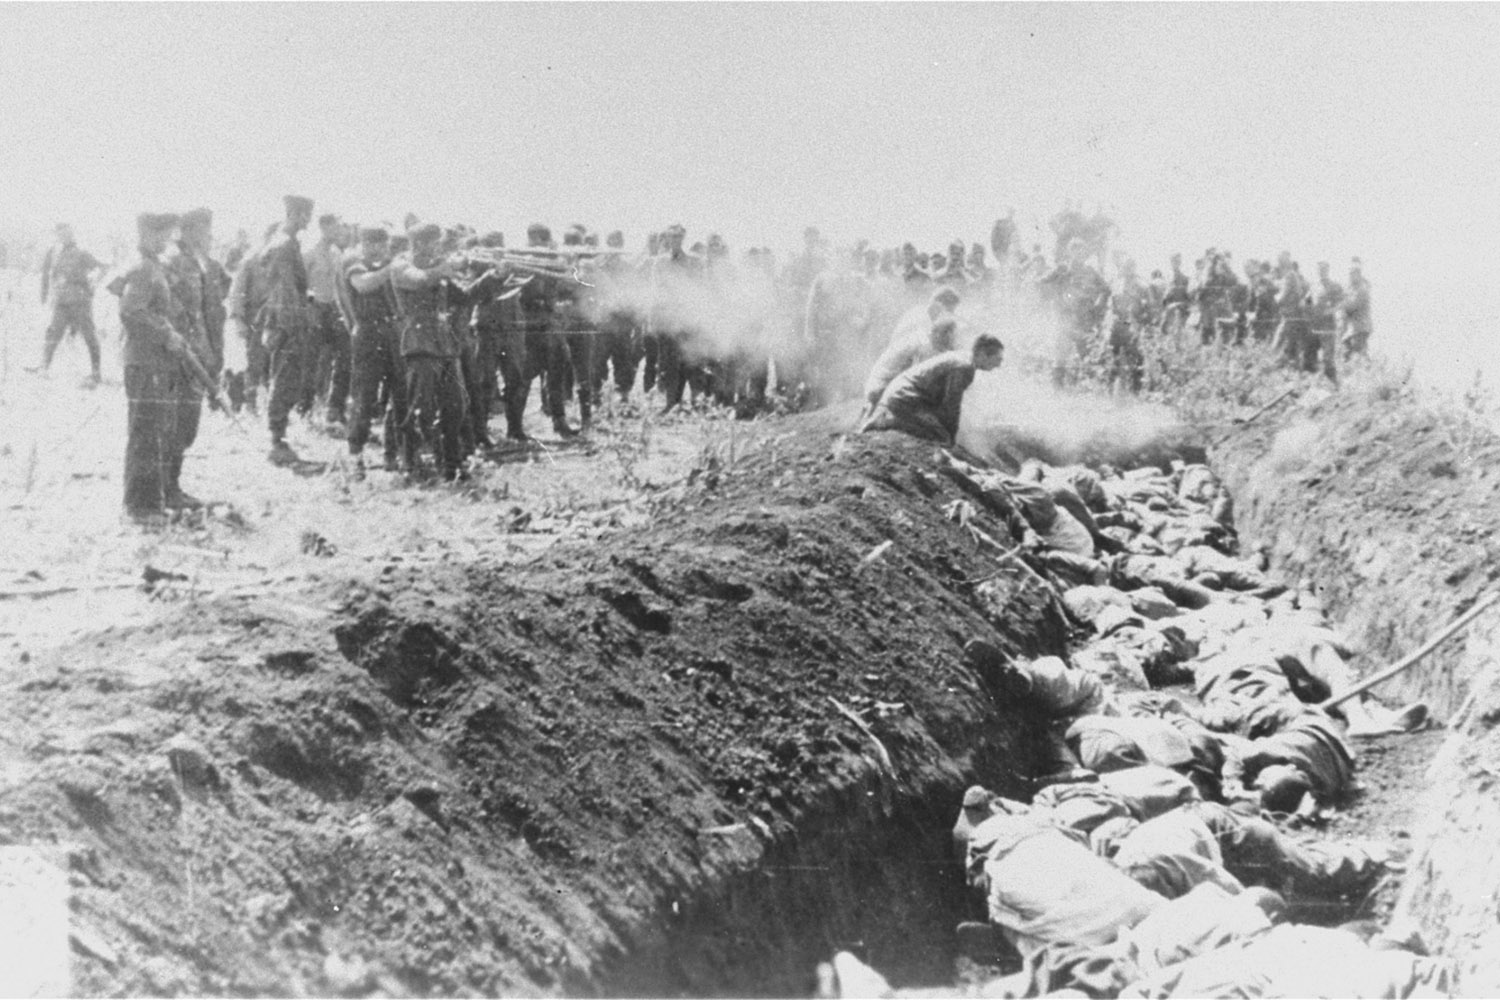 Men with an unidentified unit execute a group of Soviet civilians kneeling by the side of a mass grave, USSR, 1941.